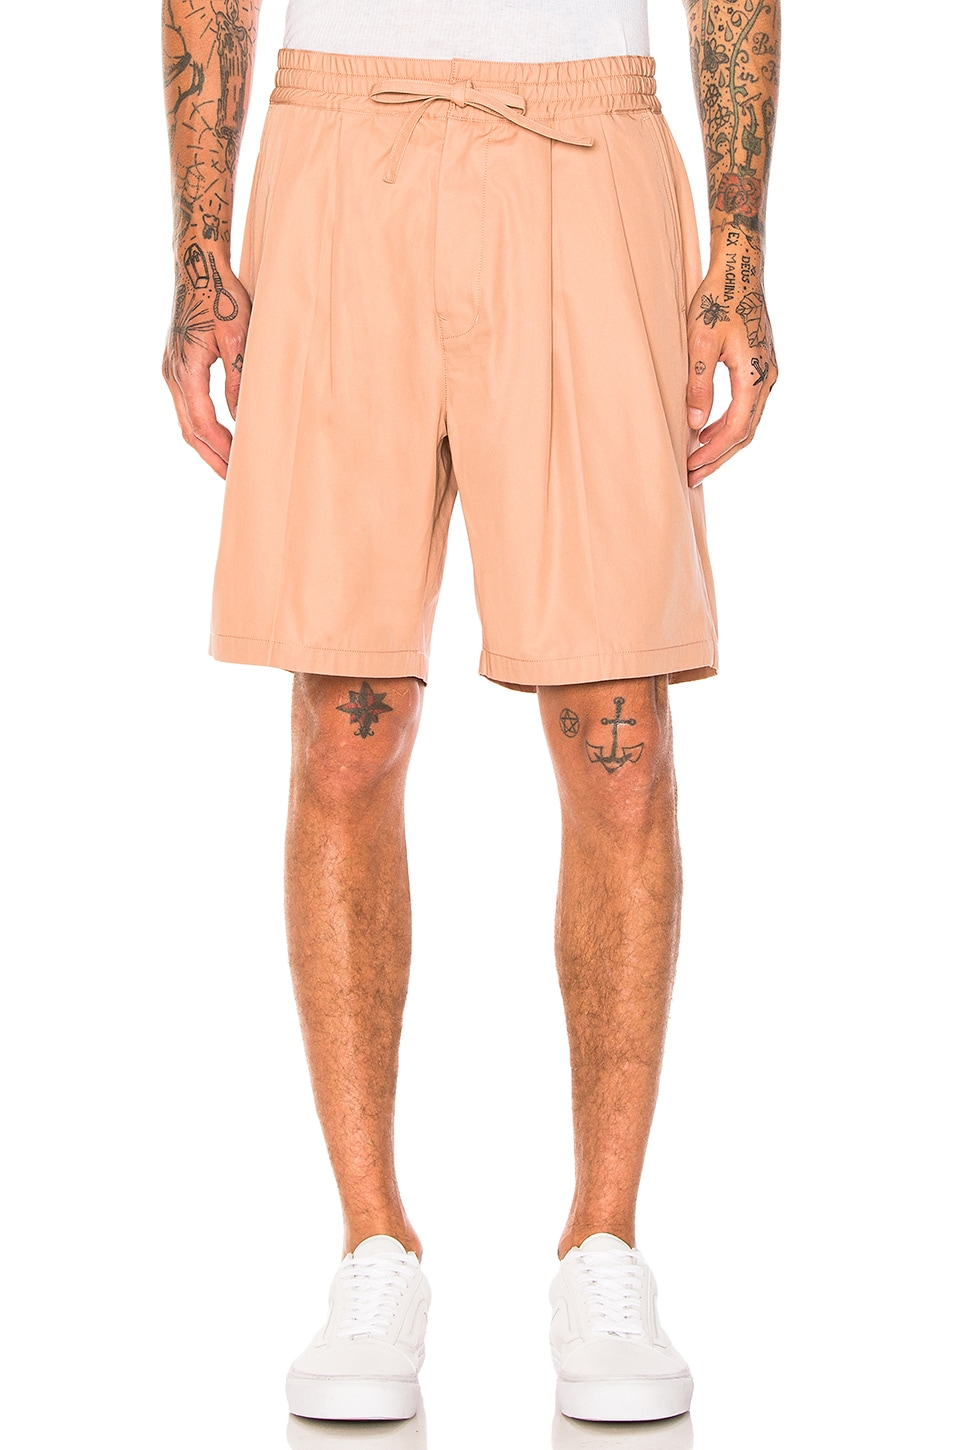 Baggy Shorts by Maiden Noir